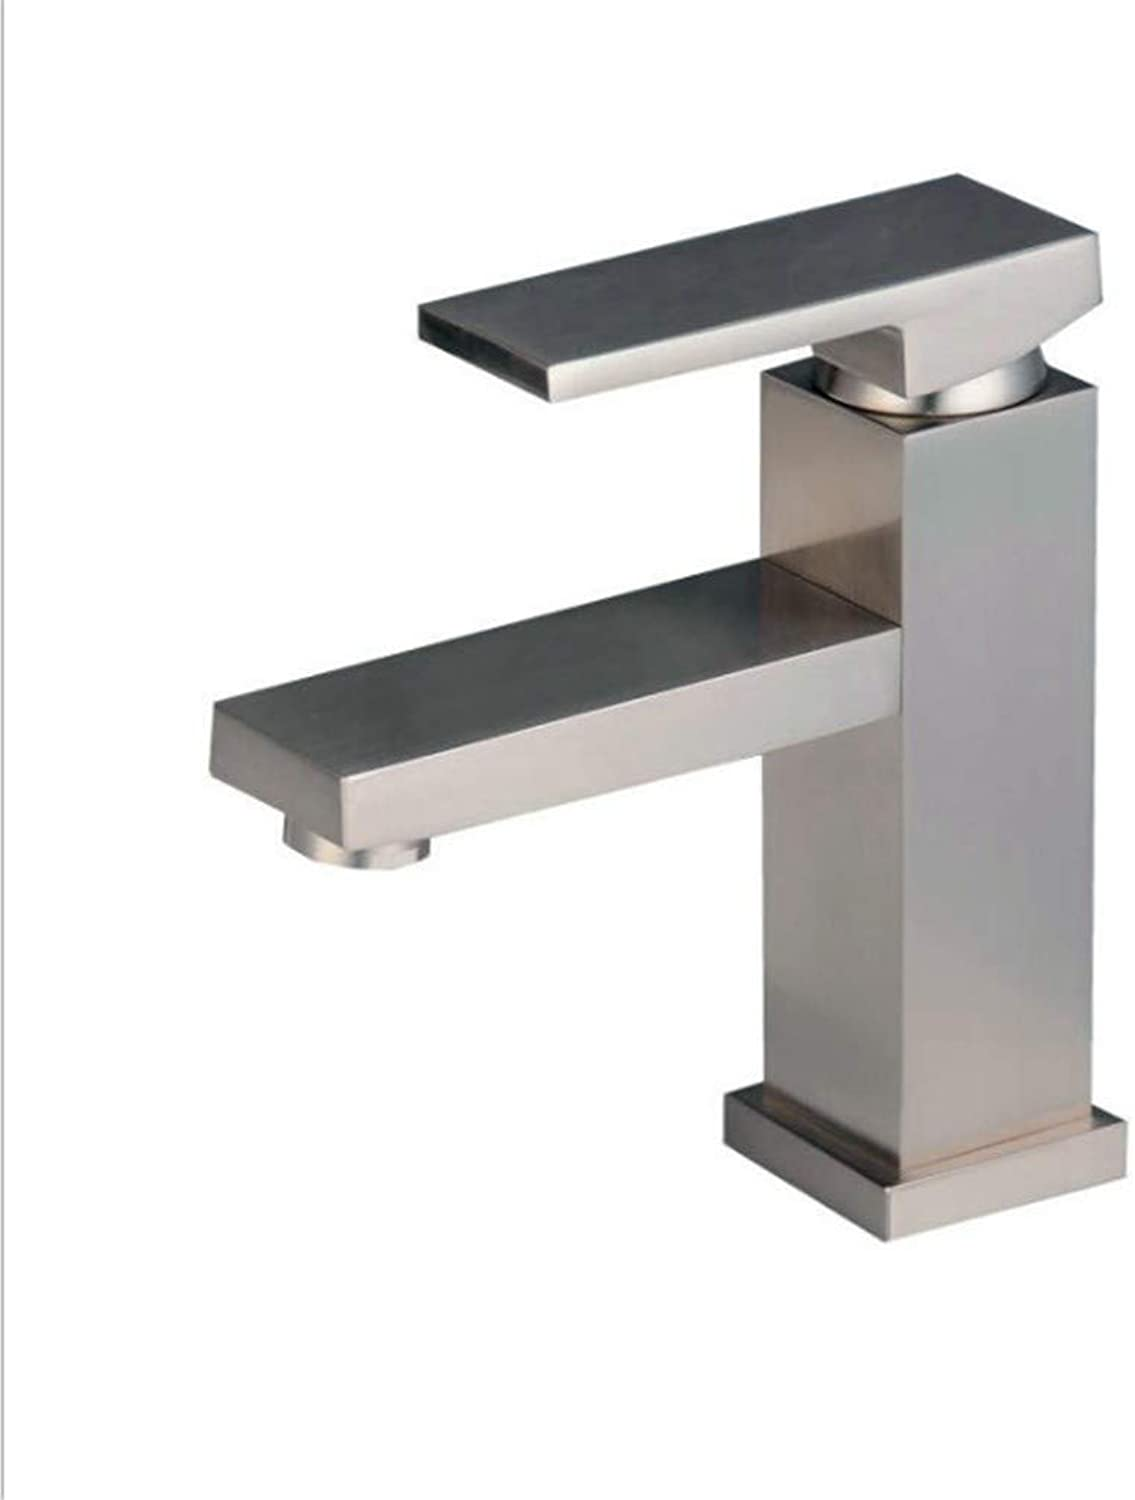 Kitchen Sink Taps Bathroom Taps Copper Cold and Hot Water Faucet Washbasin Mixing Faucet